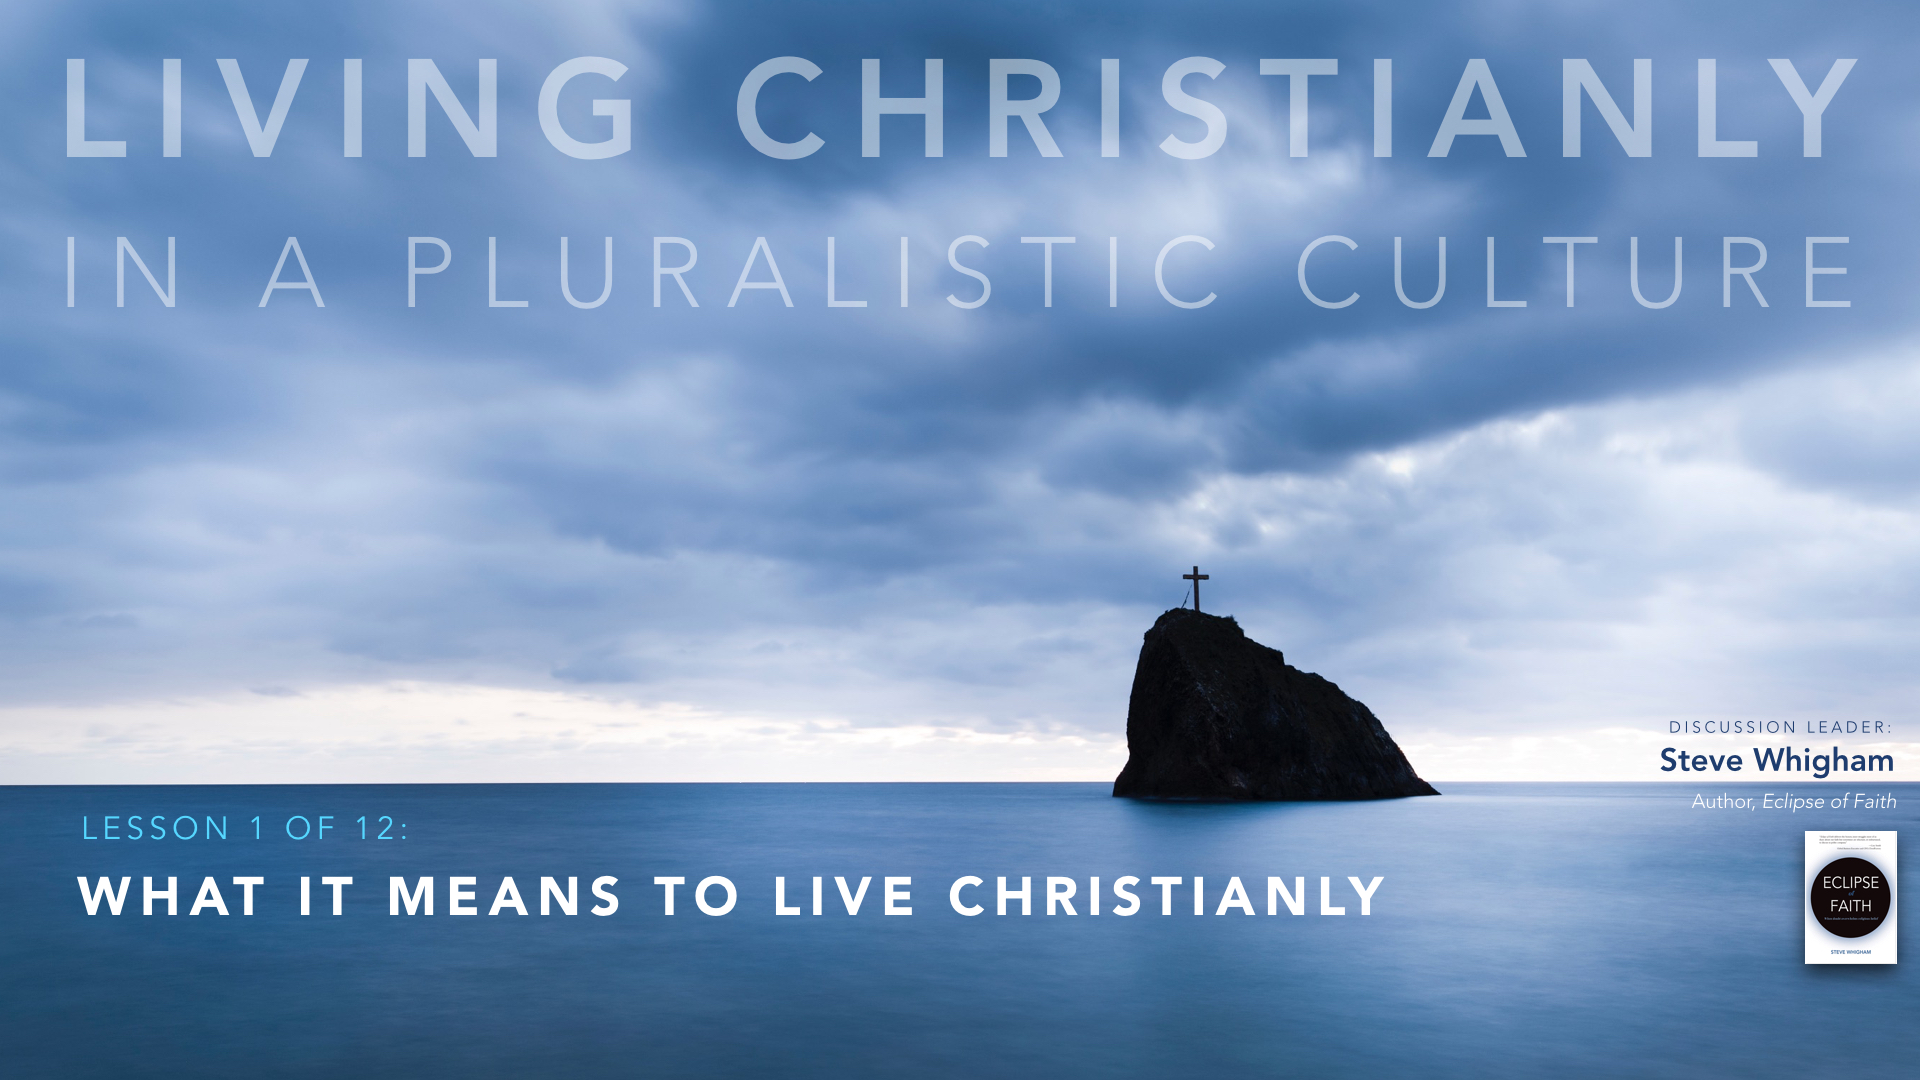 Living Christianly in a Pluralistic Culture #1: Living Christianly